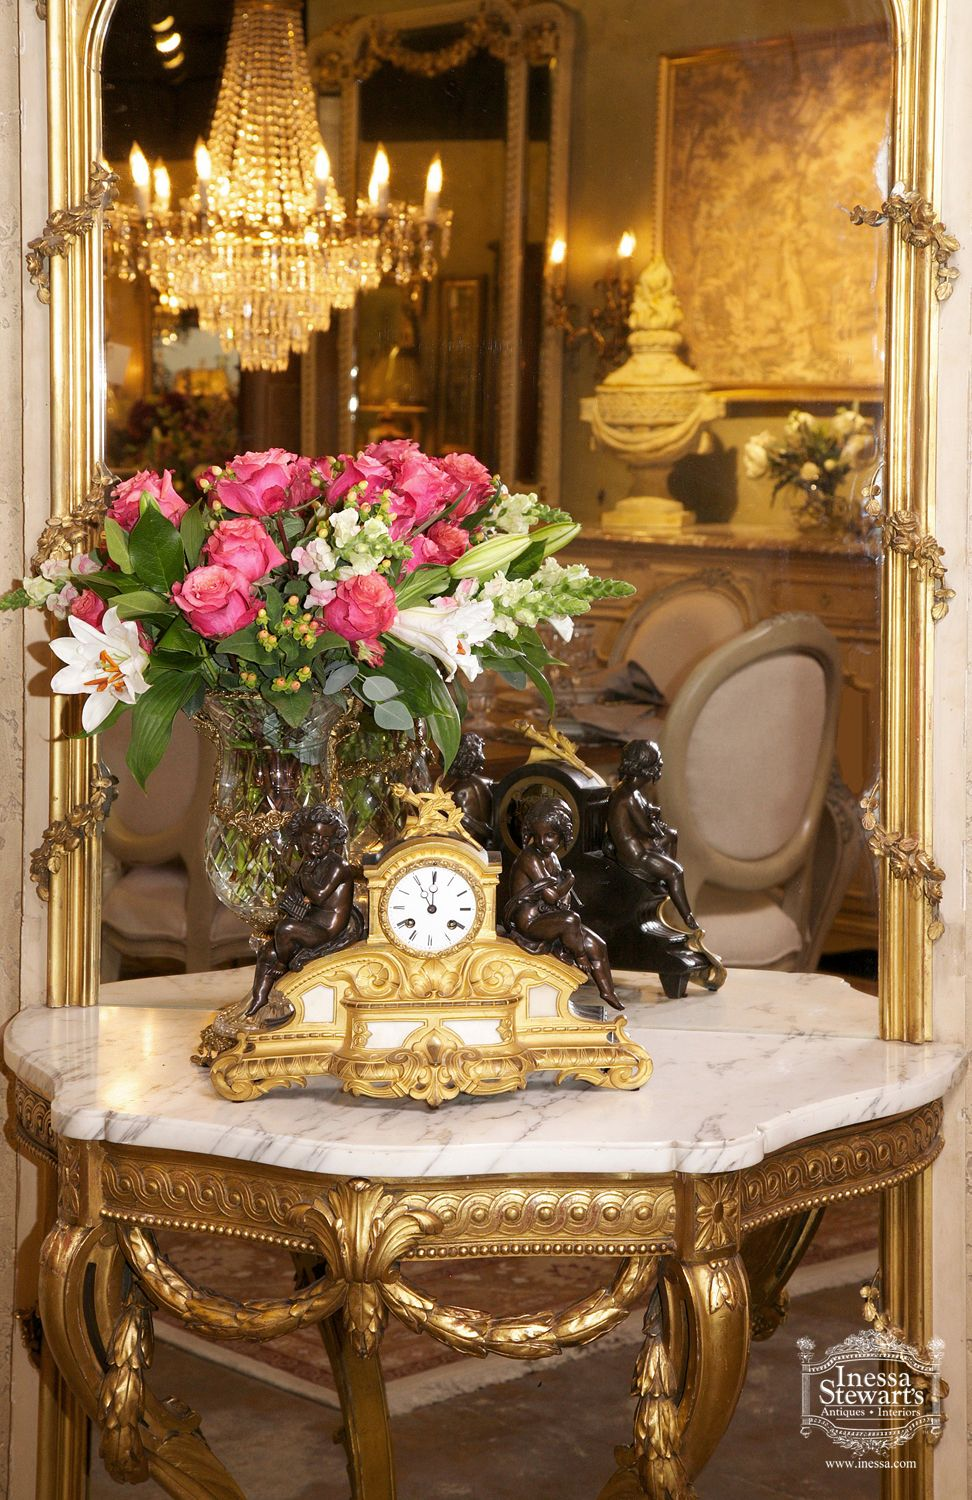 The Romance of the Past, Antique furniture and accessories. Designed by Inessa Stewart.